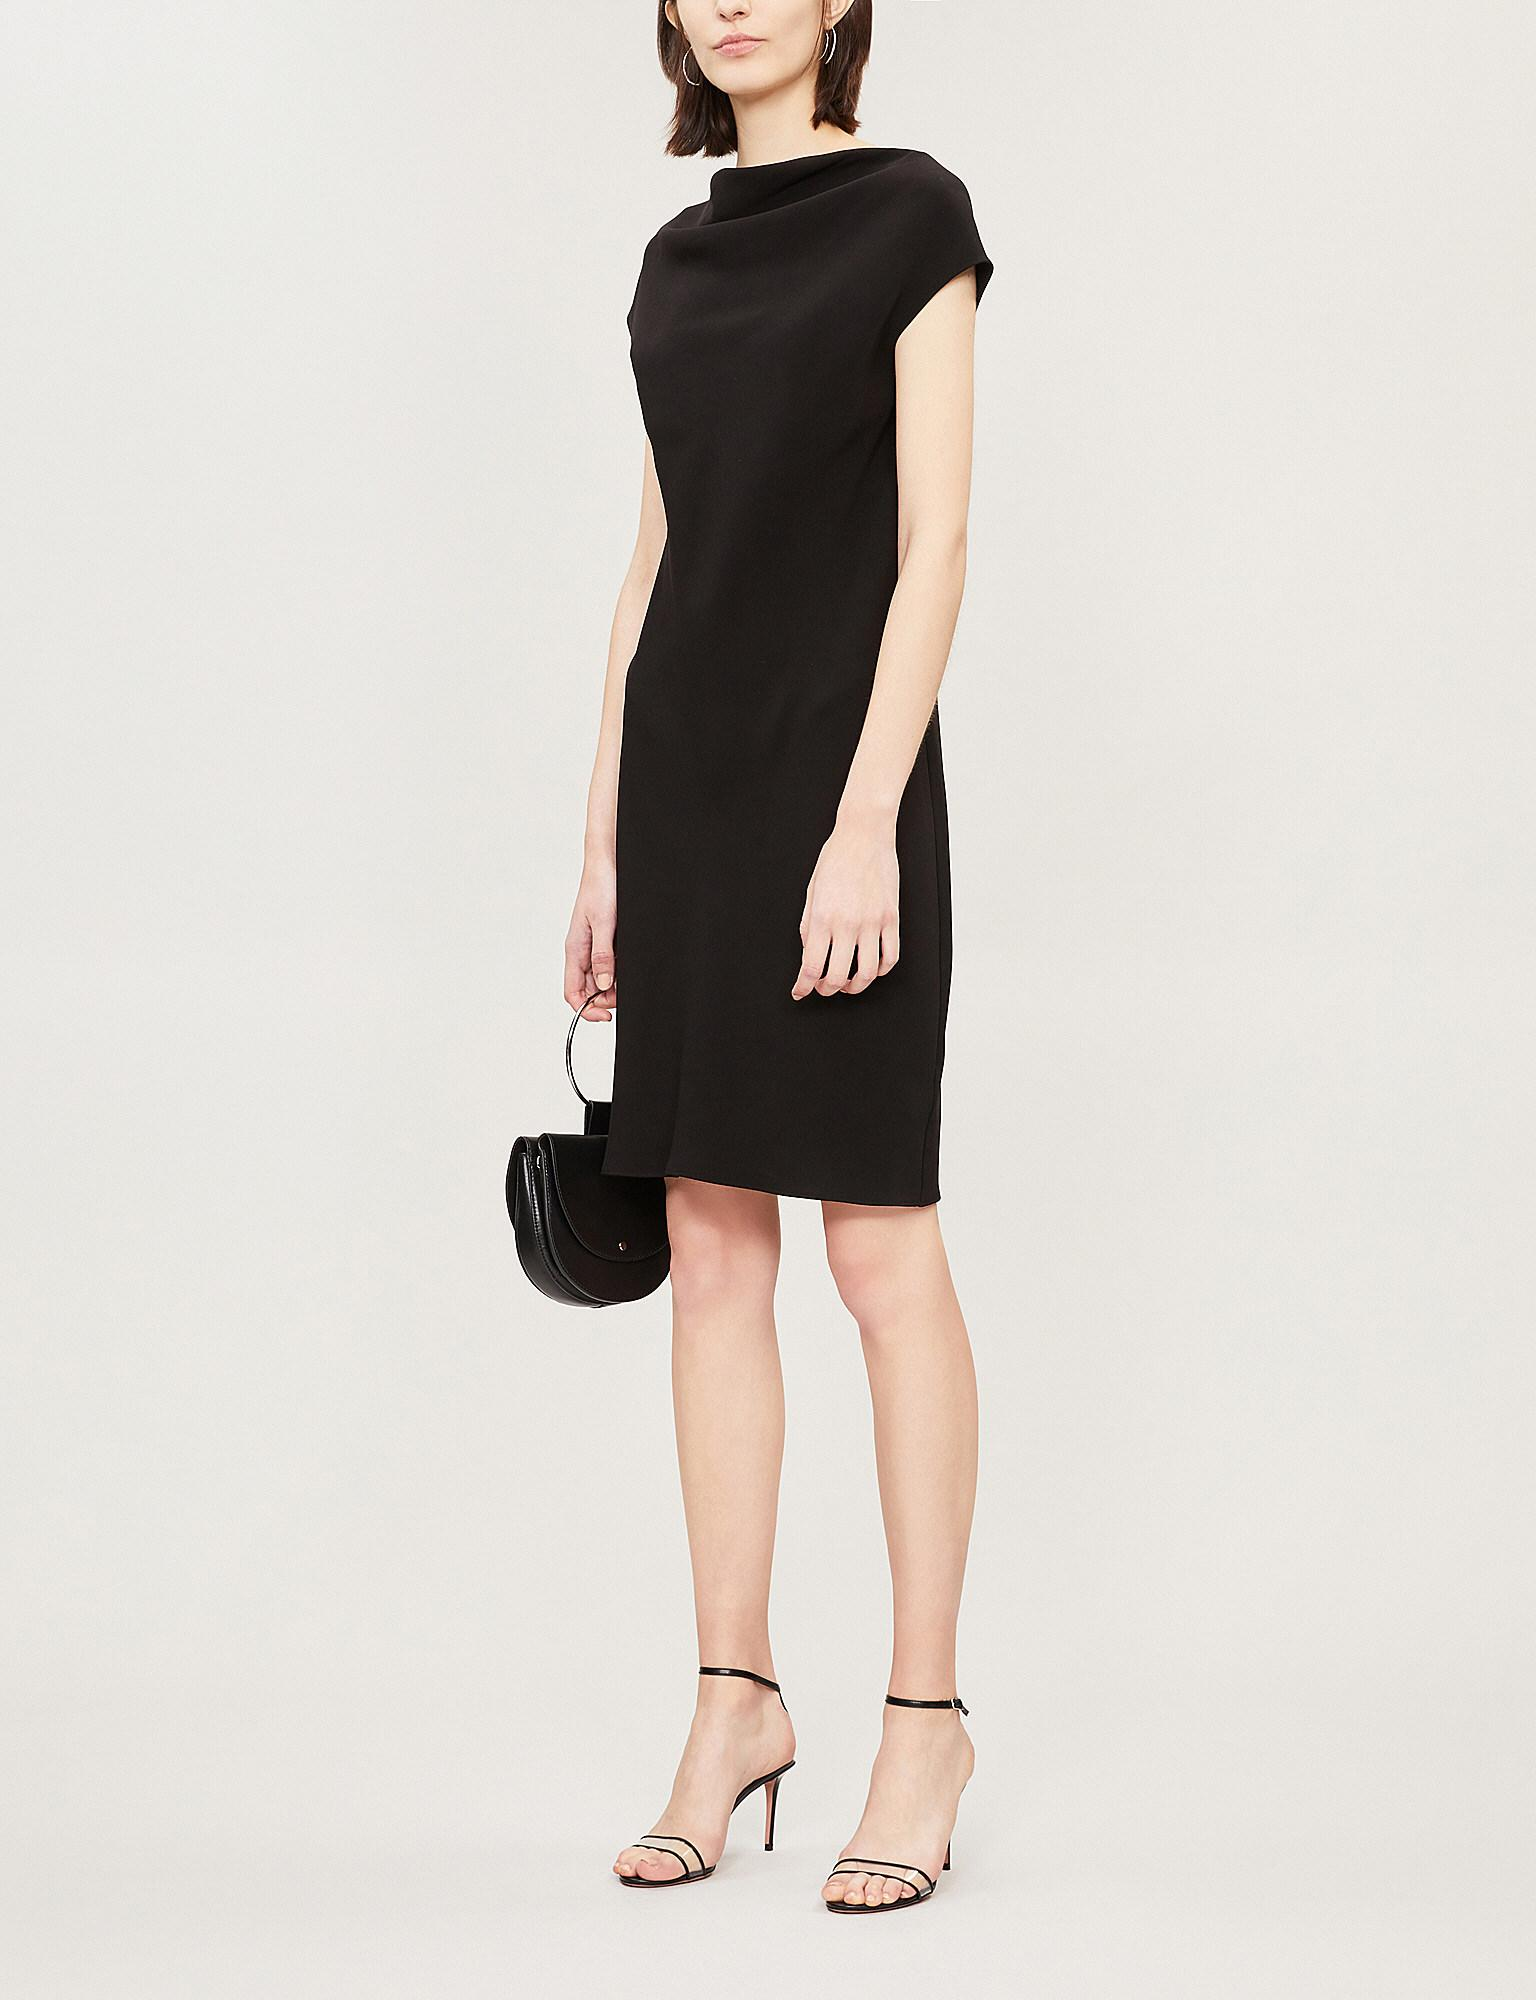 76a72ac9d33 Theory Draped Crepe Sheath Dress in Black - Lyst